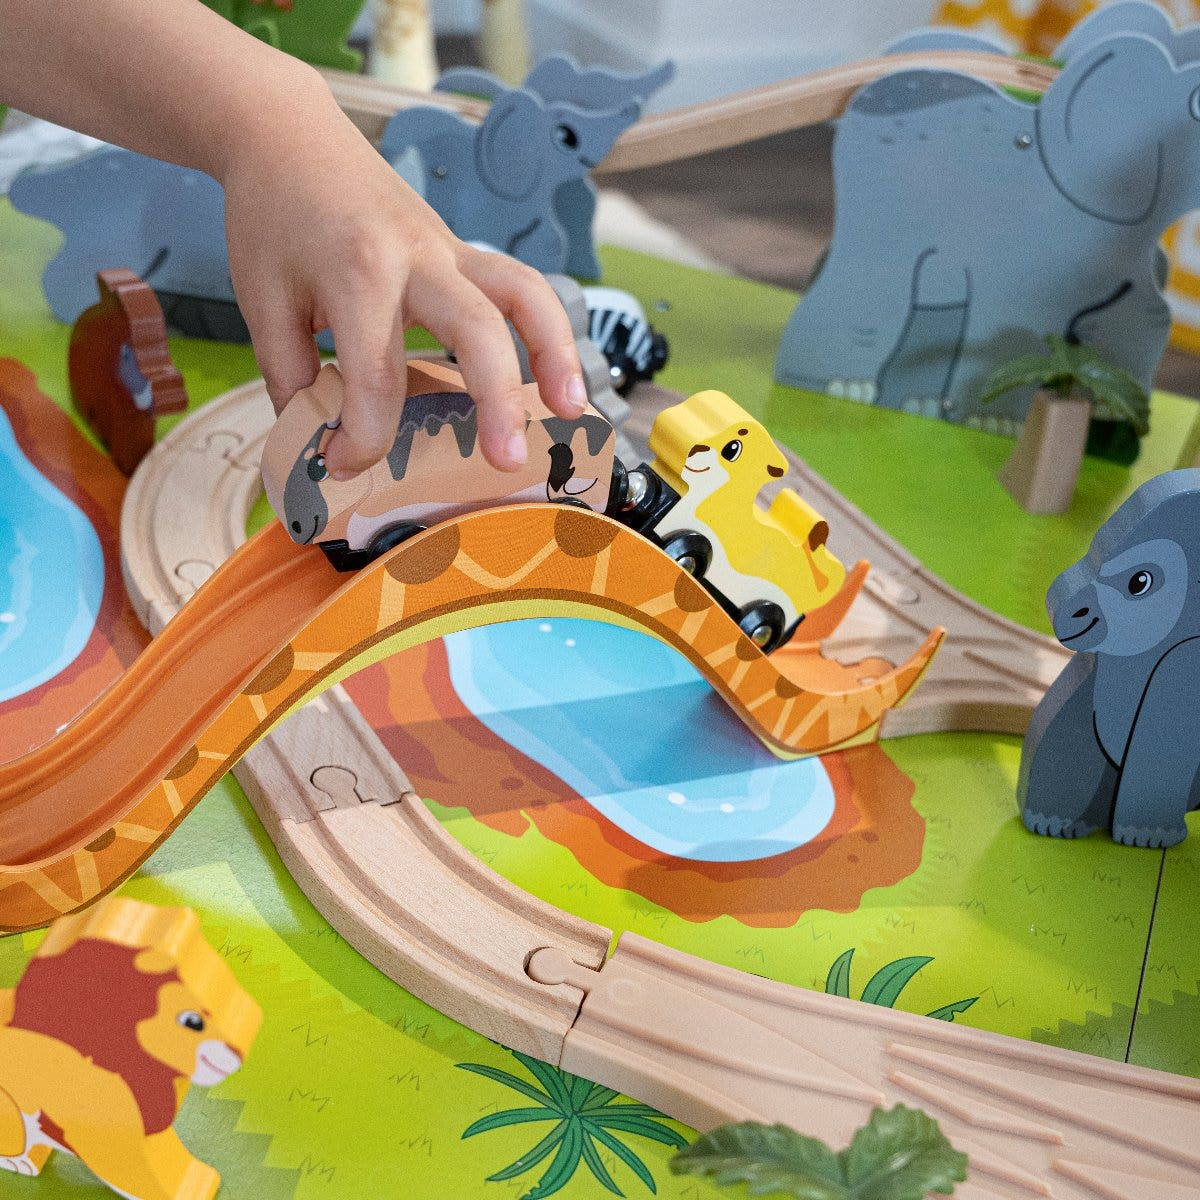 Magnetic Connection: All six of the animal vehicles have magnets to connect them so they can form a jungle parade around the track.